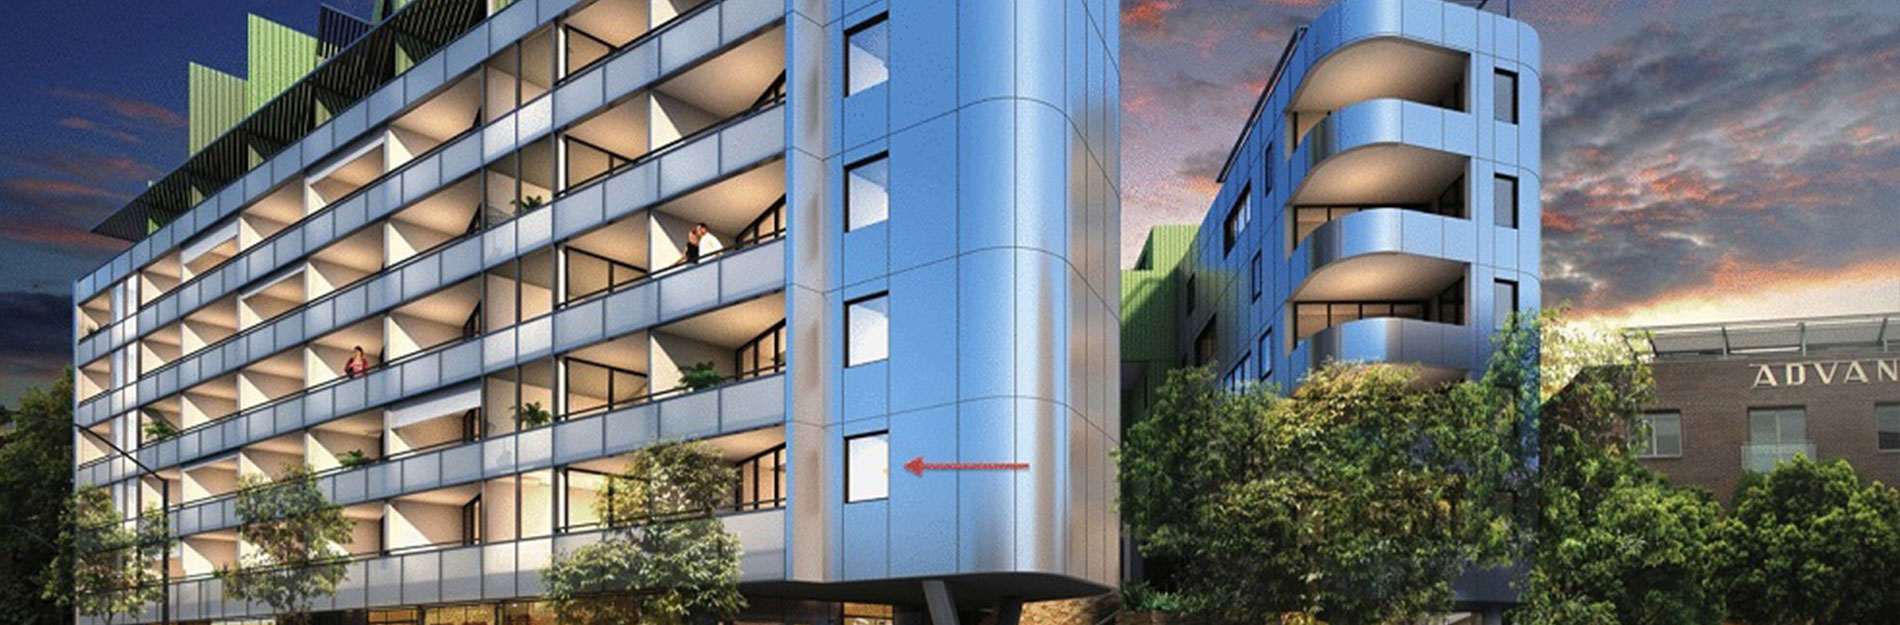 RUSHCUTTERS BAY – 132 apartments